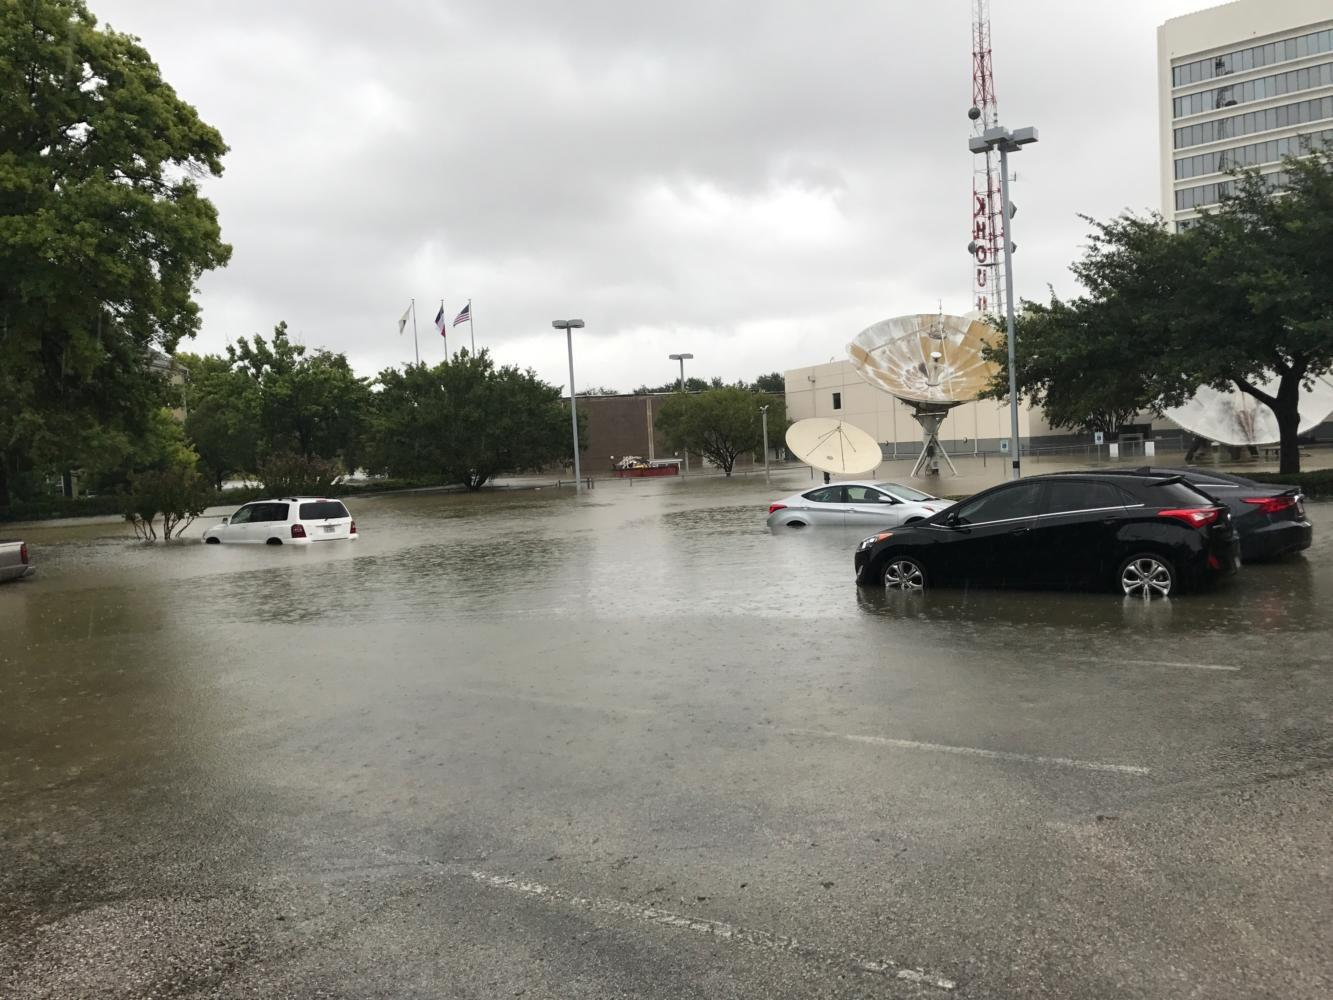 Cars on Allen Parkway at Studemont Street are submerged in water due to flooding caused by Hurricane Harvey. Allen Parkway was hit particularly hard due to its proximity to downtown Houston.